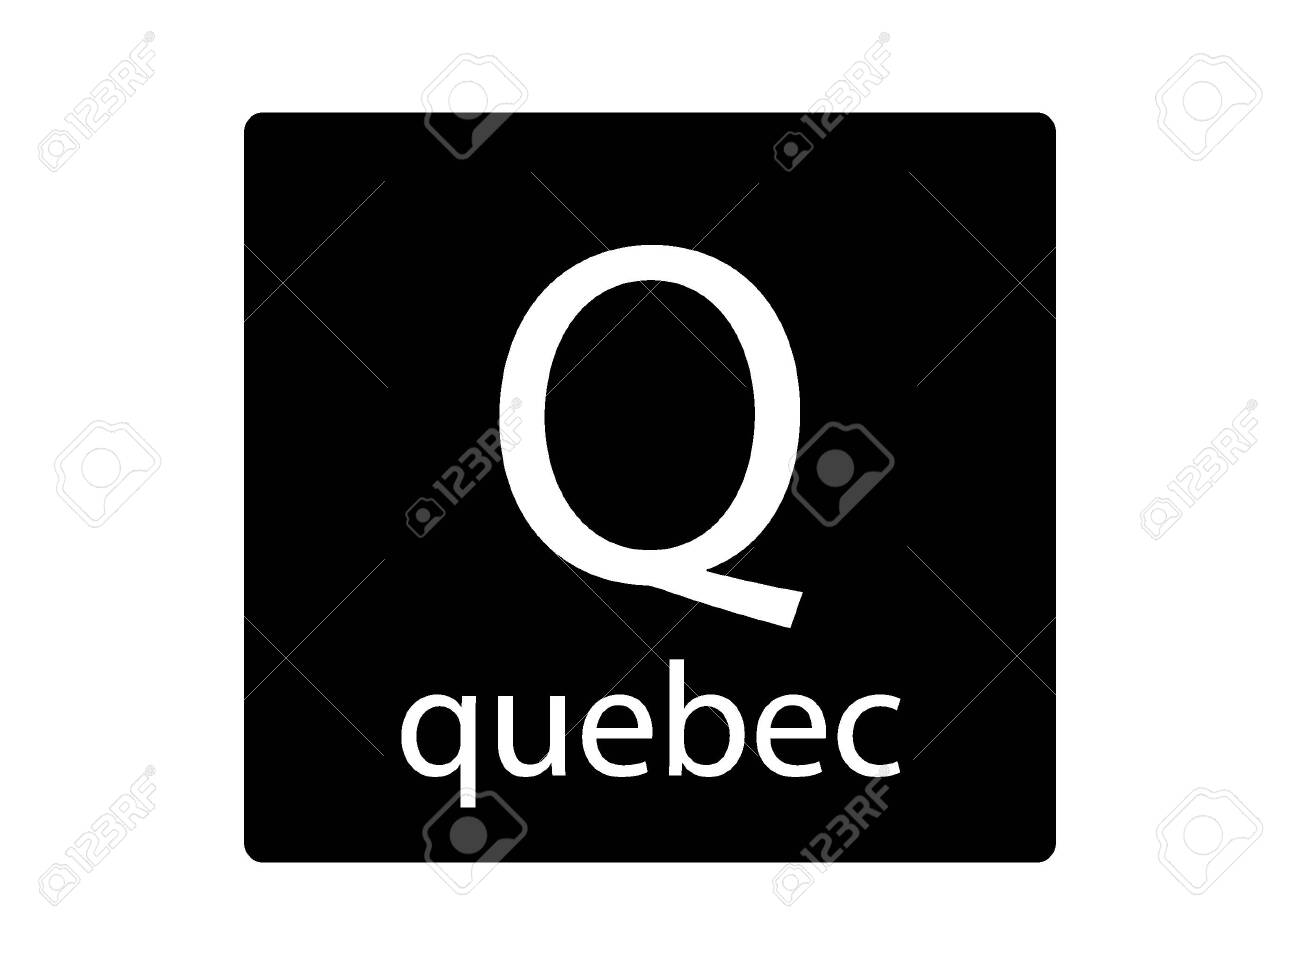 Army Phonetic Alphabet Letter Quebec Royalty Free Cliparts Vectors And Stock Illustration Image 133346013